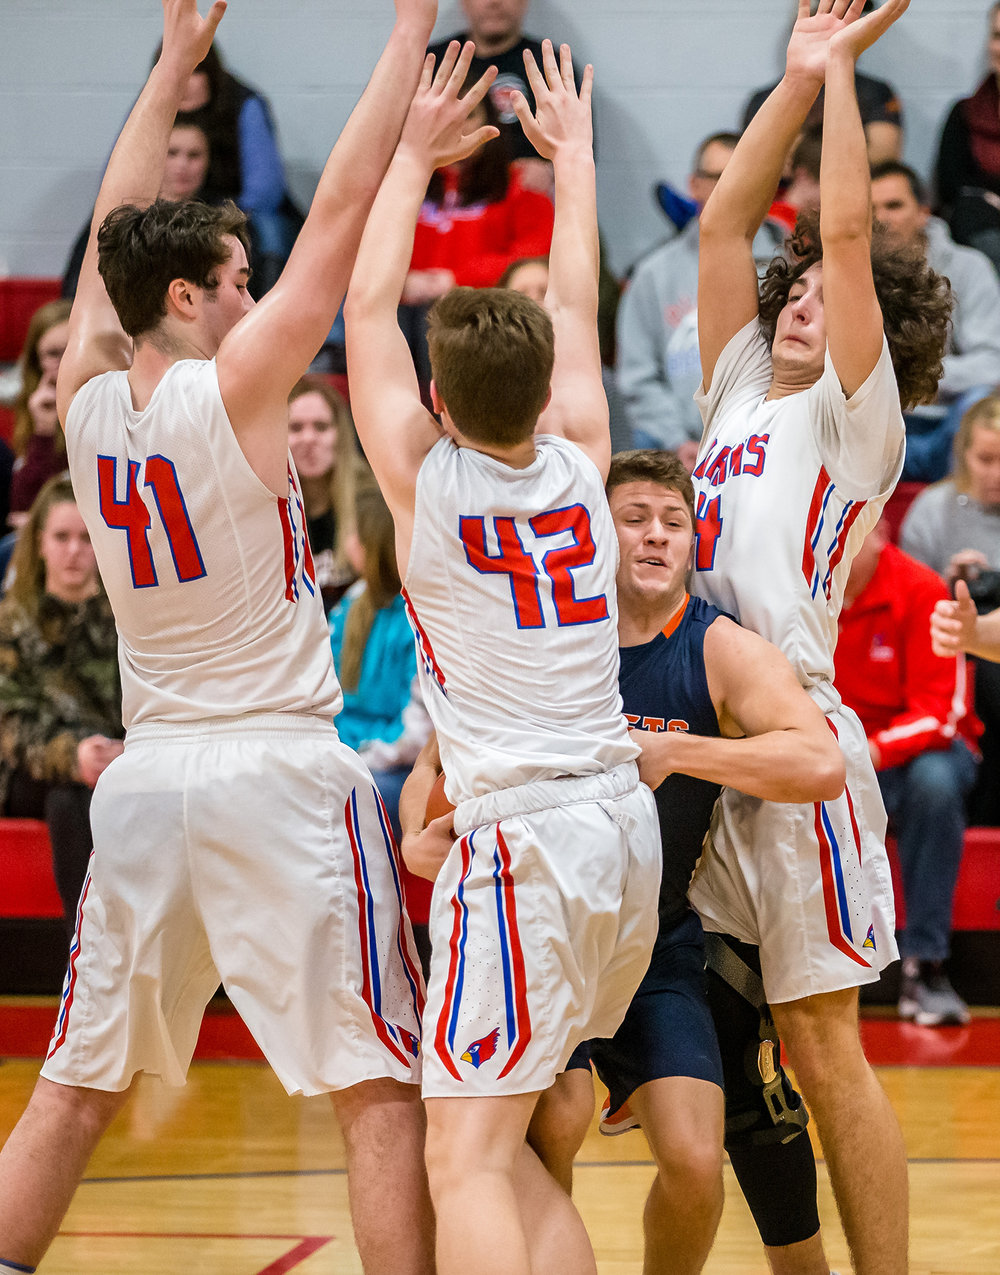 Rochester's Cade Eddington (4) draws the triple team from the Pleasant Plains defense as he drives underneath the basket in the first half at Pleasant Plains High School, Tuesday, Jan. 22, 2019, in Springfield, Ill. [Justin L. Fowler/The State Journal-Register]